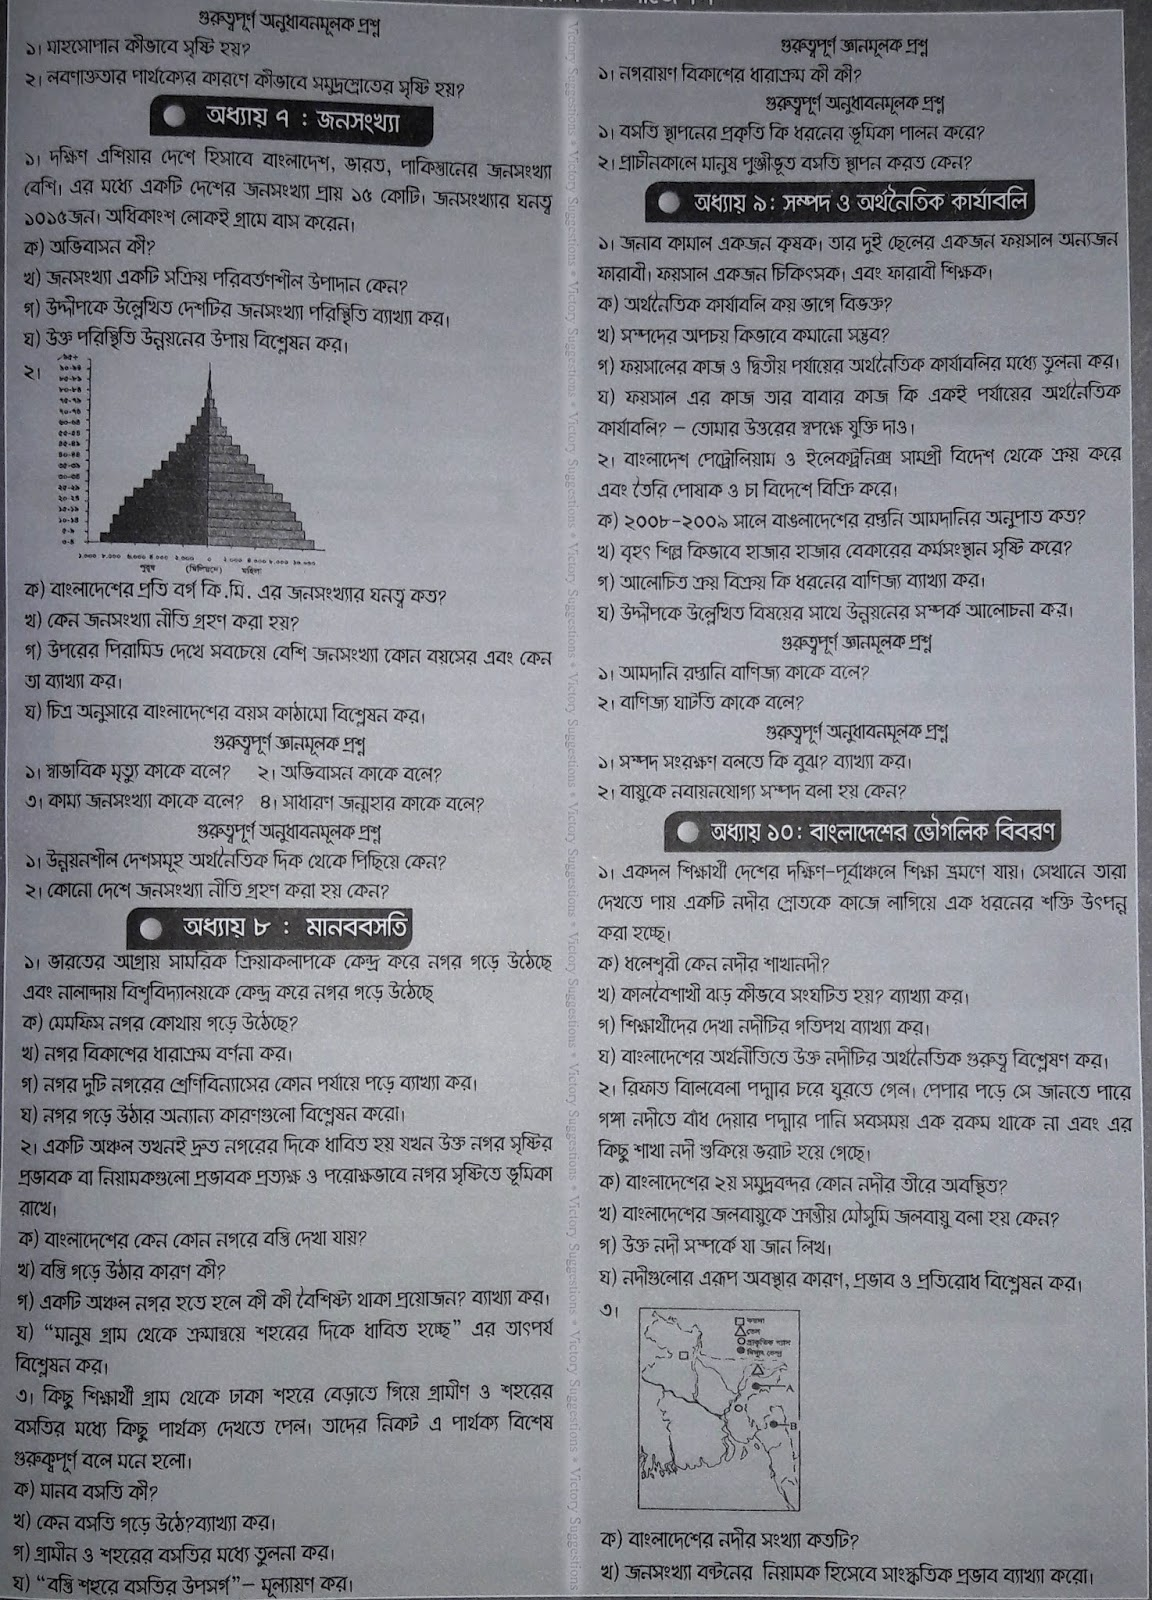 ssc Geography and Environment suggestion, question paper, model question, mcq question, question pattern, syllabus for dhaka board, all boards